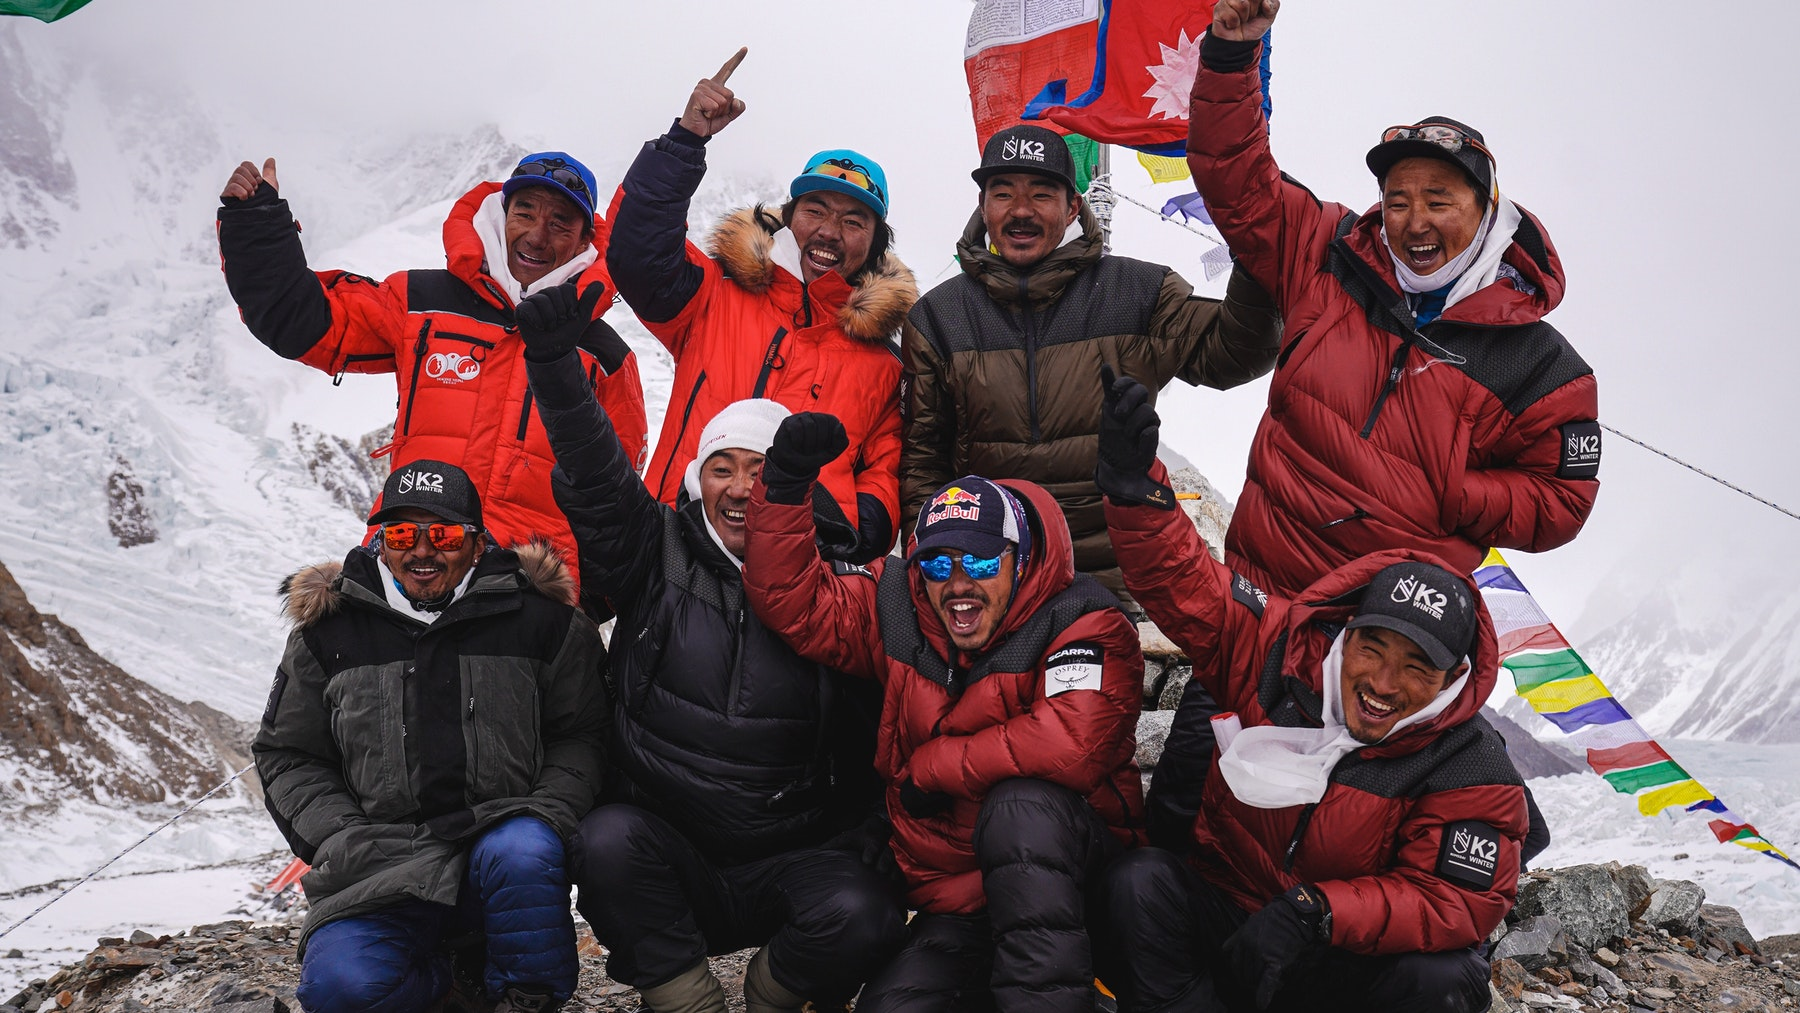 Nepali mountaineers create a world record by climbing Mount K2 in dreary winter conditions